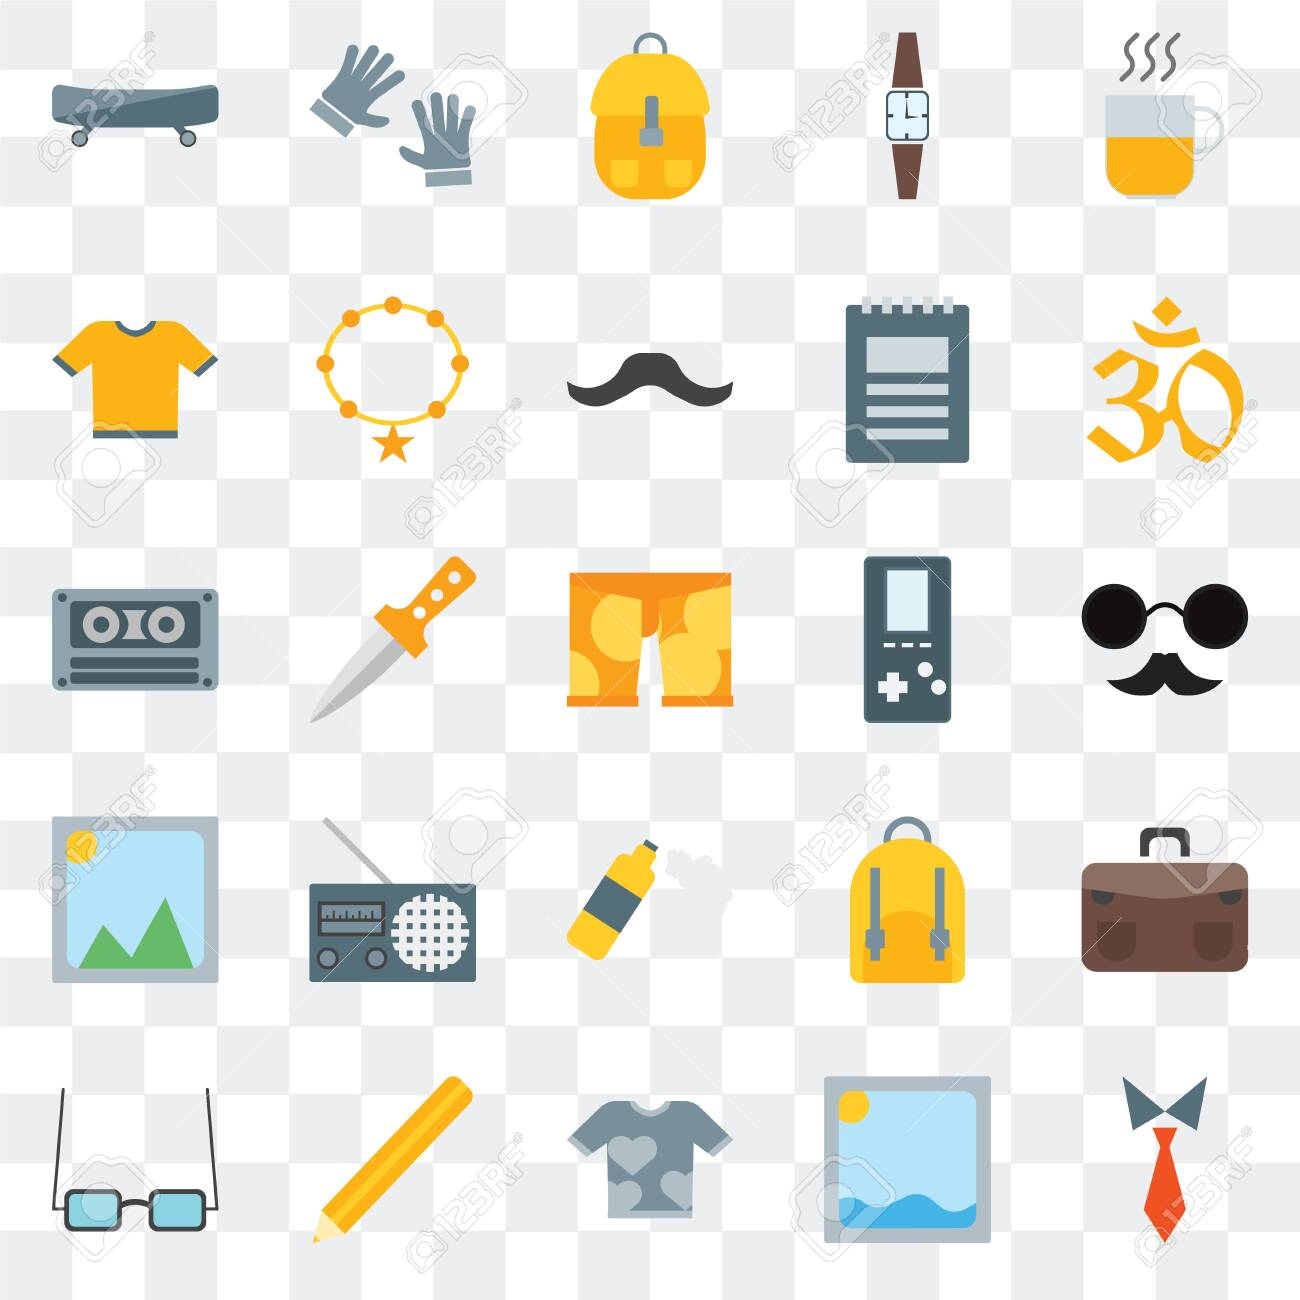 Set Of 25 transparent icons such as Tie, Picture, Shirt, Pencil, Accessory, Indian, Foam, Accessory, web UI transparency icon pack - 130332550